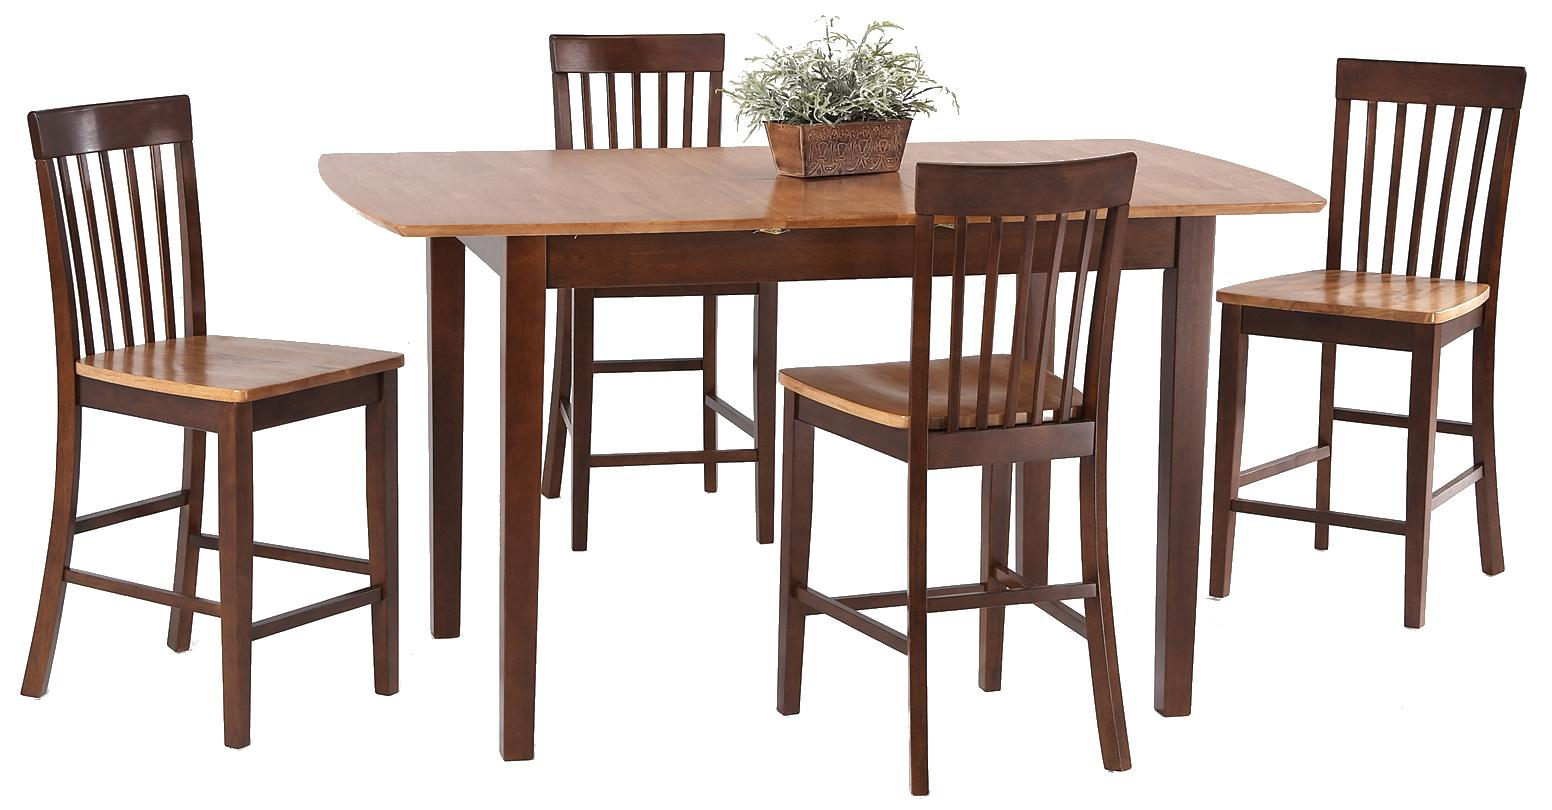 Pub Sets 5-Piece Butterfly Leaf Pub Table Set by Amesbury Chair at Dinette Depot